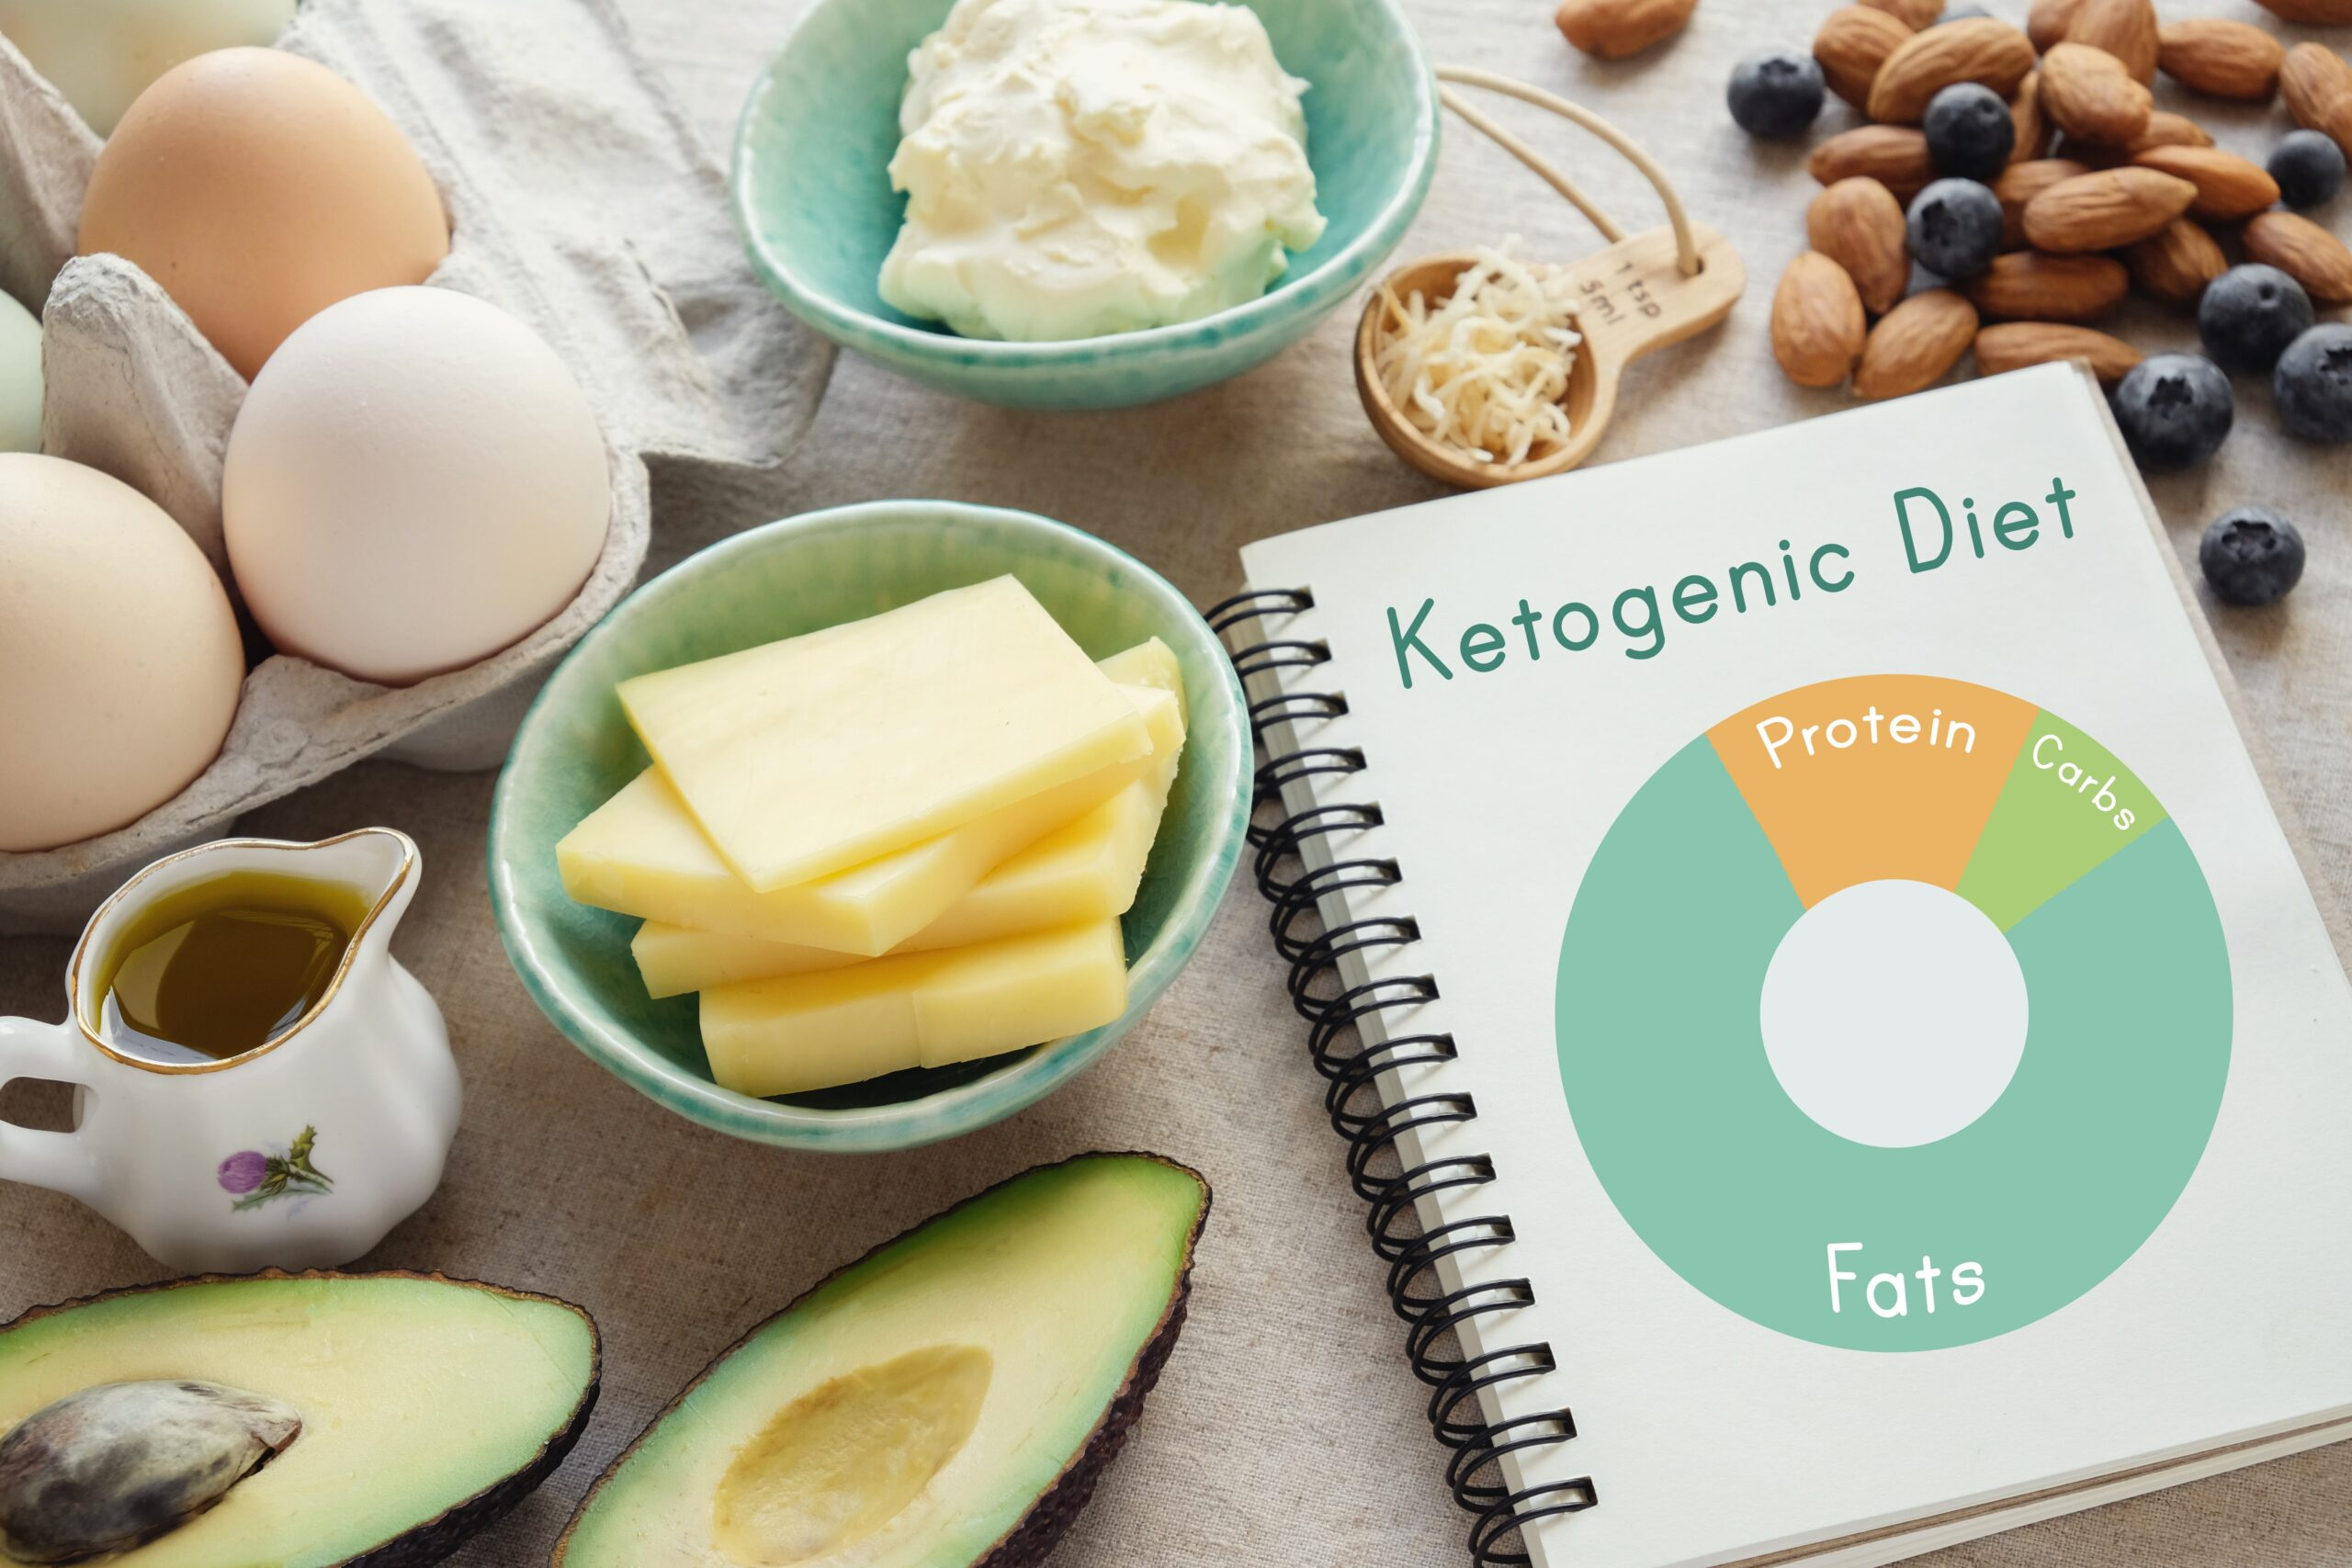 21 Day Keto Meal Plan